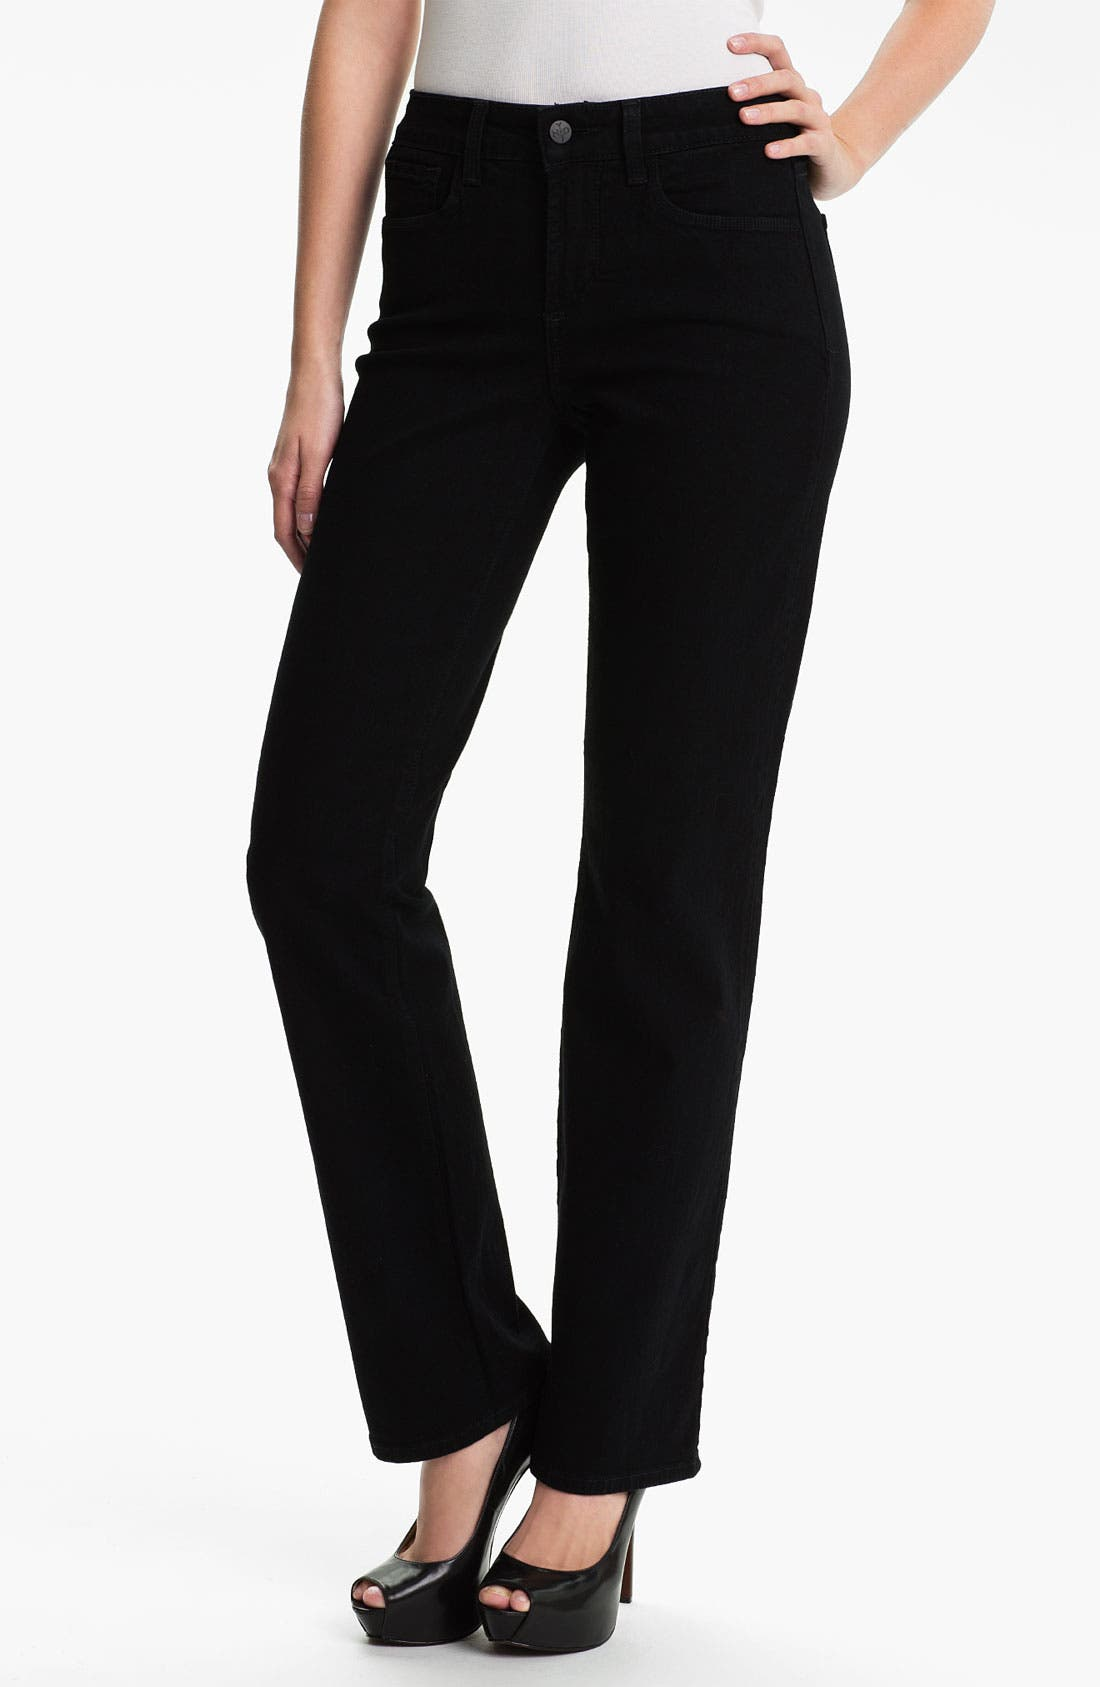 Alternate Image 1 Selected - NYDJ 'Marilyn' Embellished Straight Leg Stretch Jeans